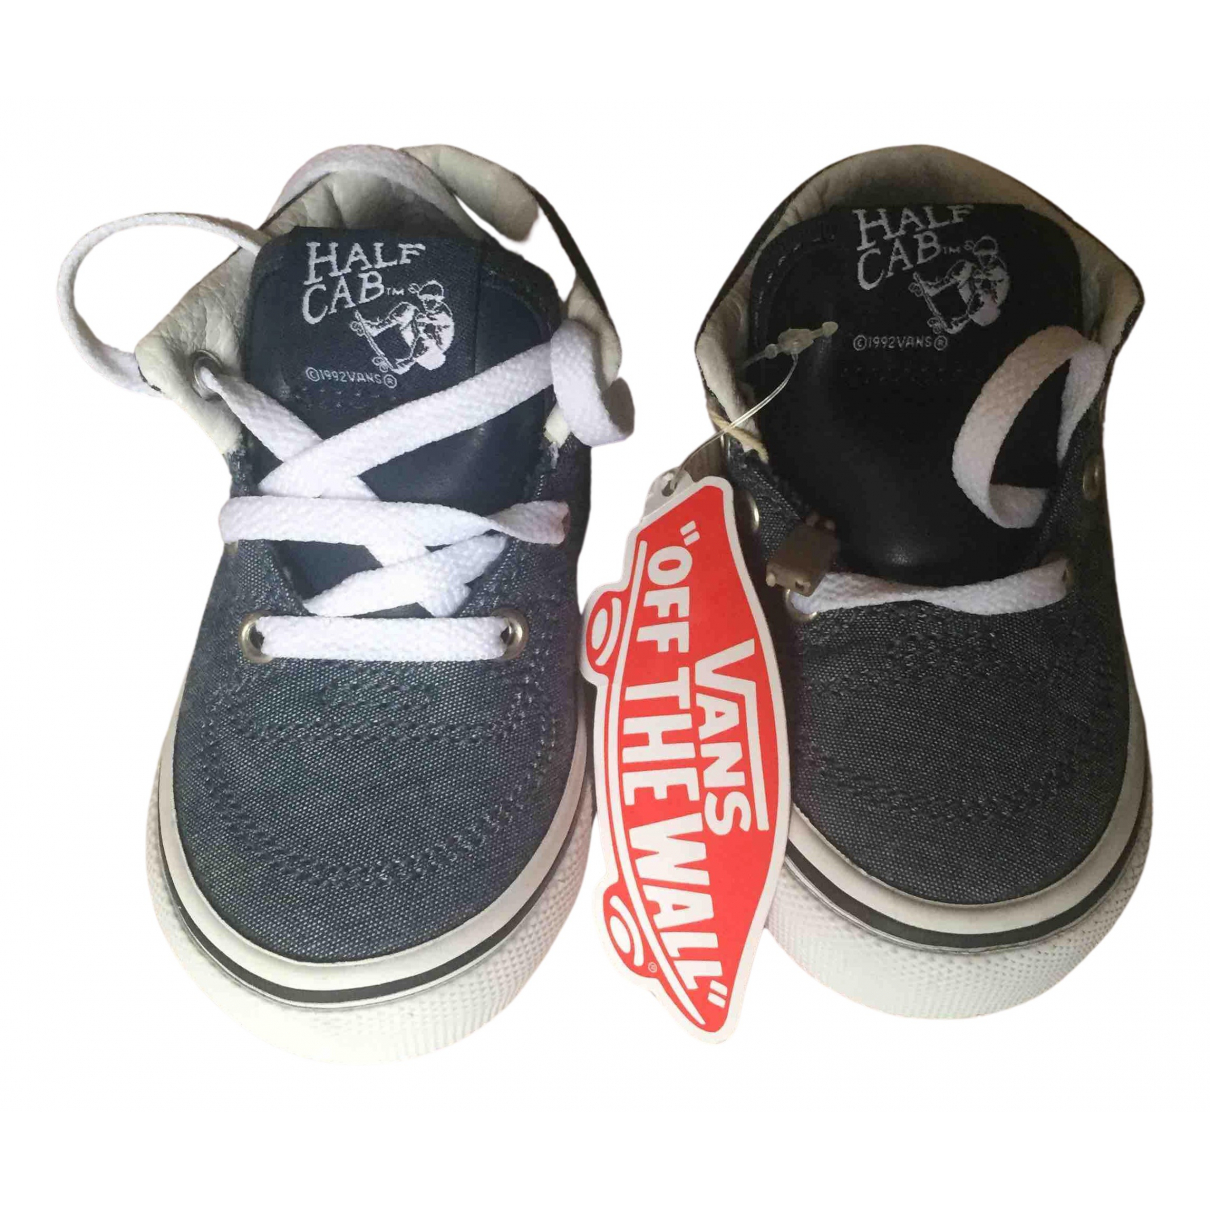 Vans N Blue Cloth Trainers for Kids 4.5 US